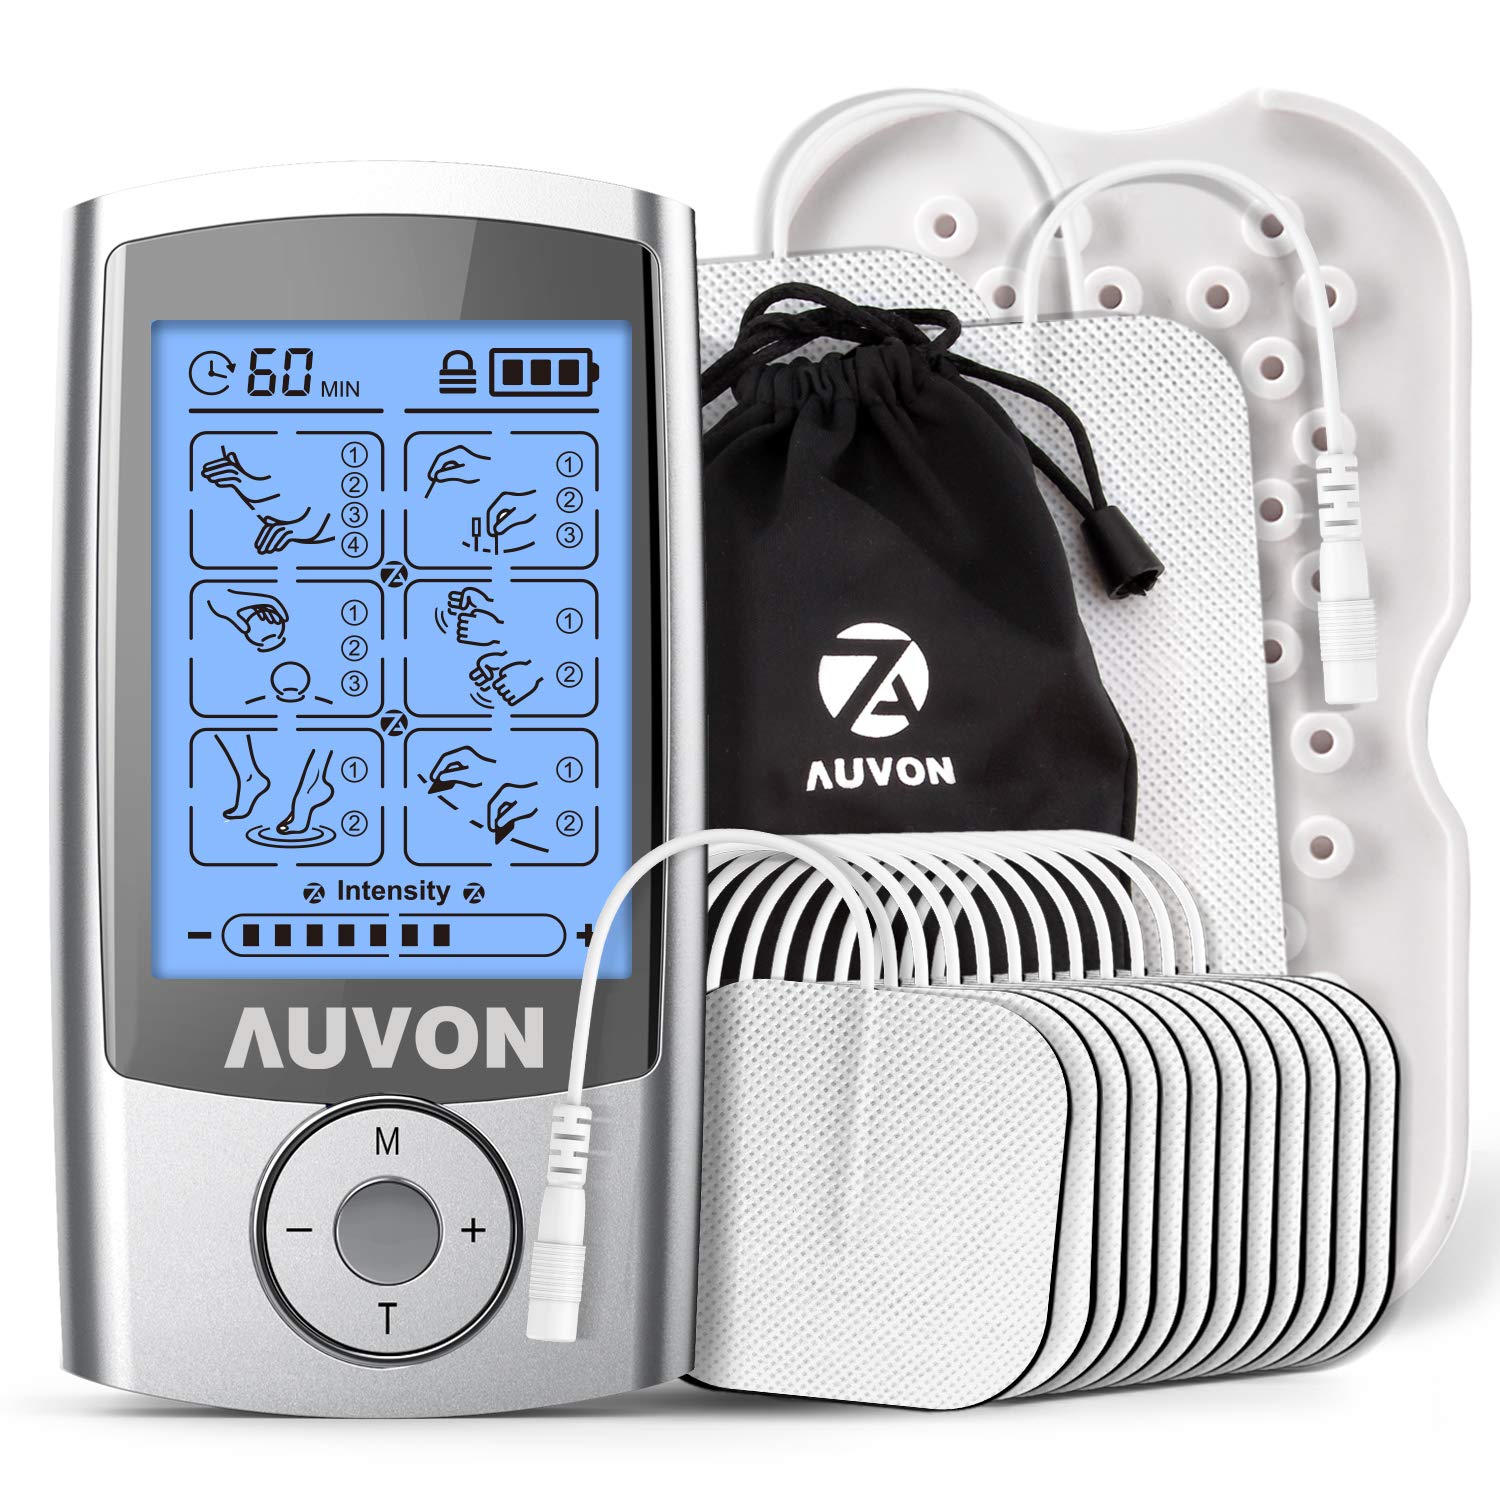 AUVON Rechargeable TENS Unit Muscle Stimulator, 2nd Gen16 Modes TENS Machine with Upgraded Self-Adhesive Reusable TENS Electrodes Pads (2''x2'' 12pcs, 2''x4'' 2pcs)